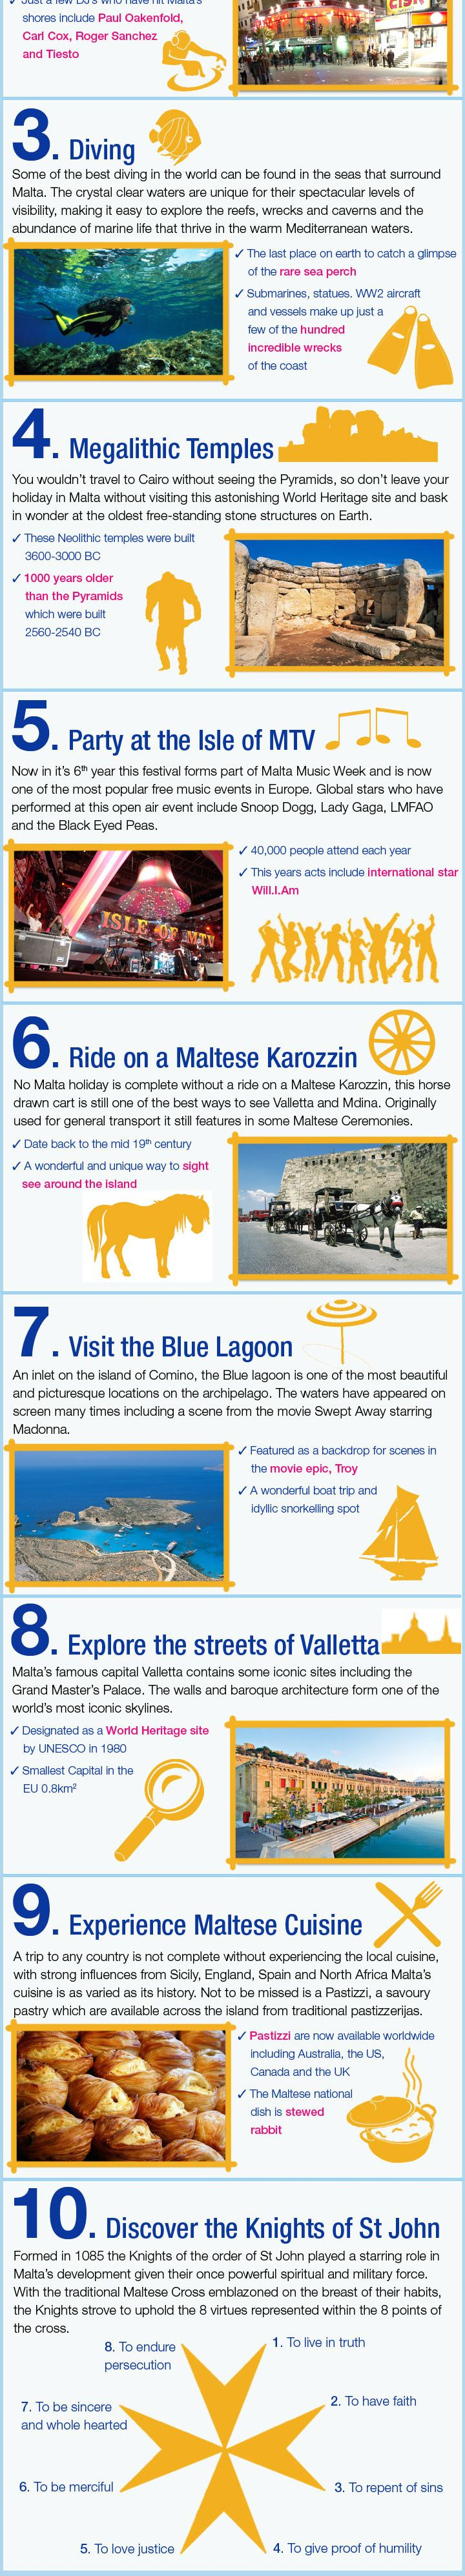 Top 10 things to see & do in Malta